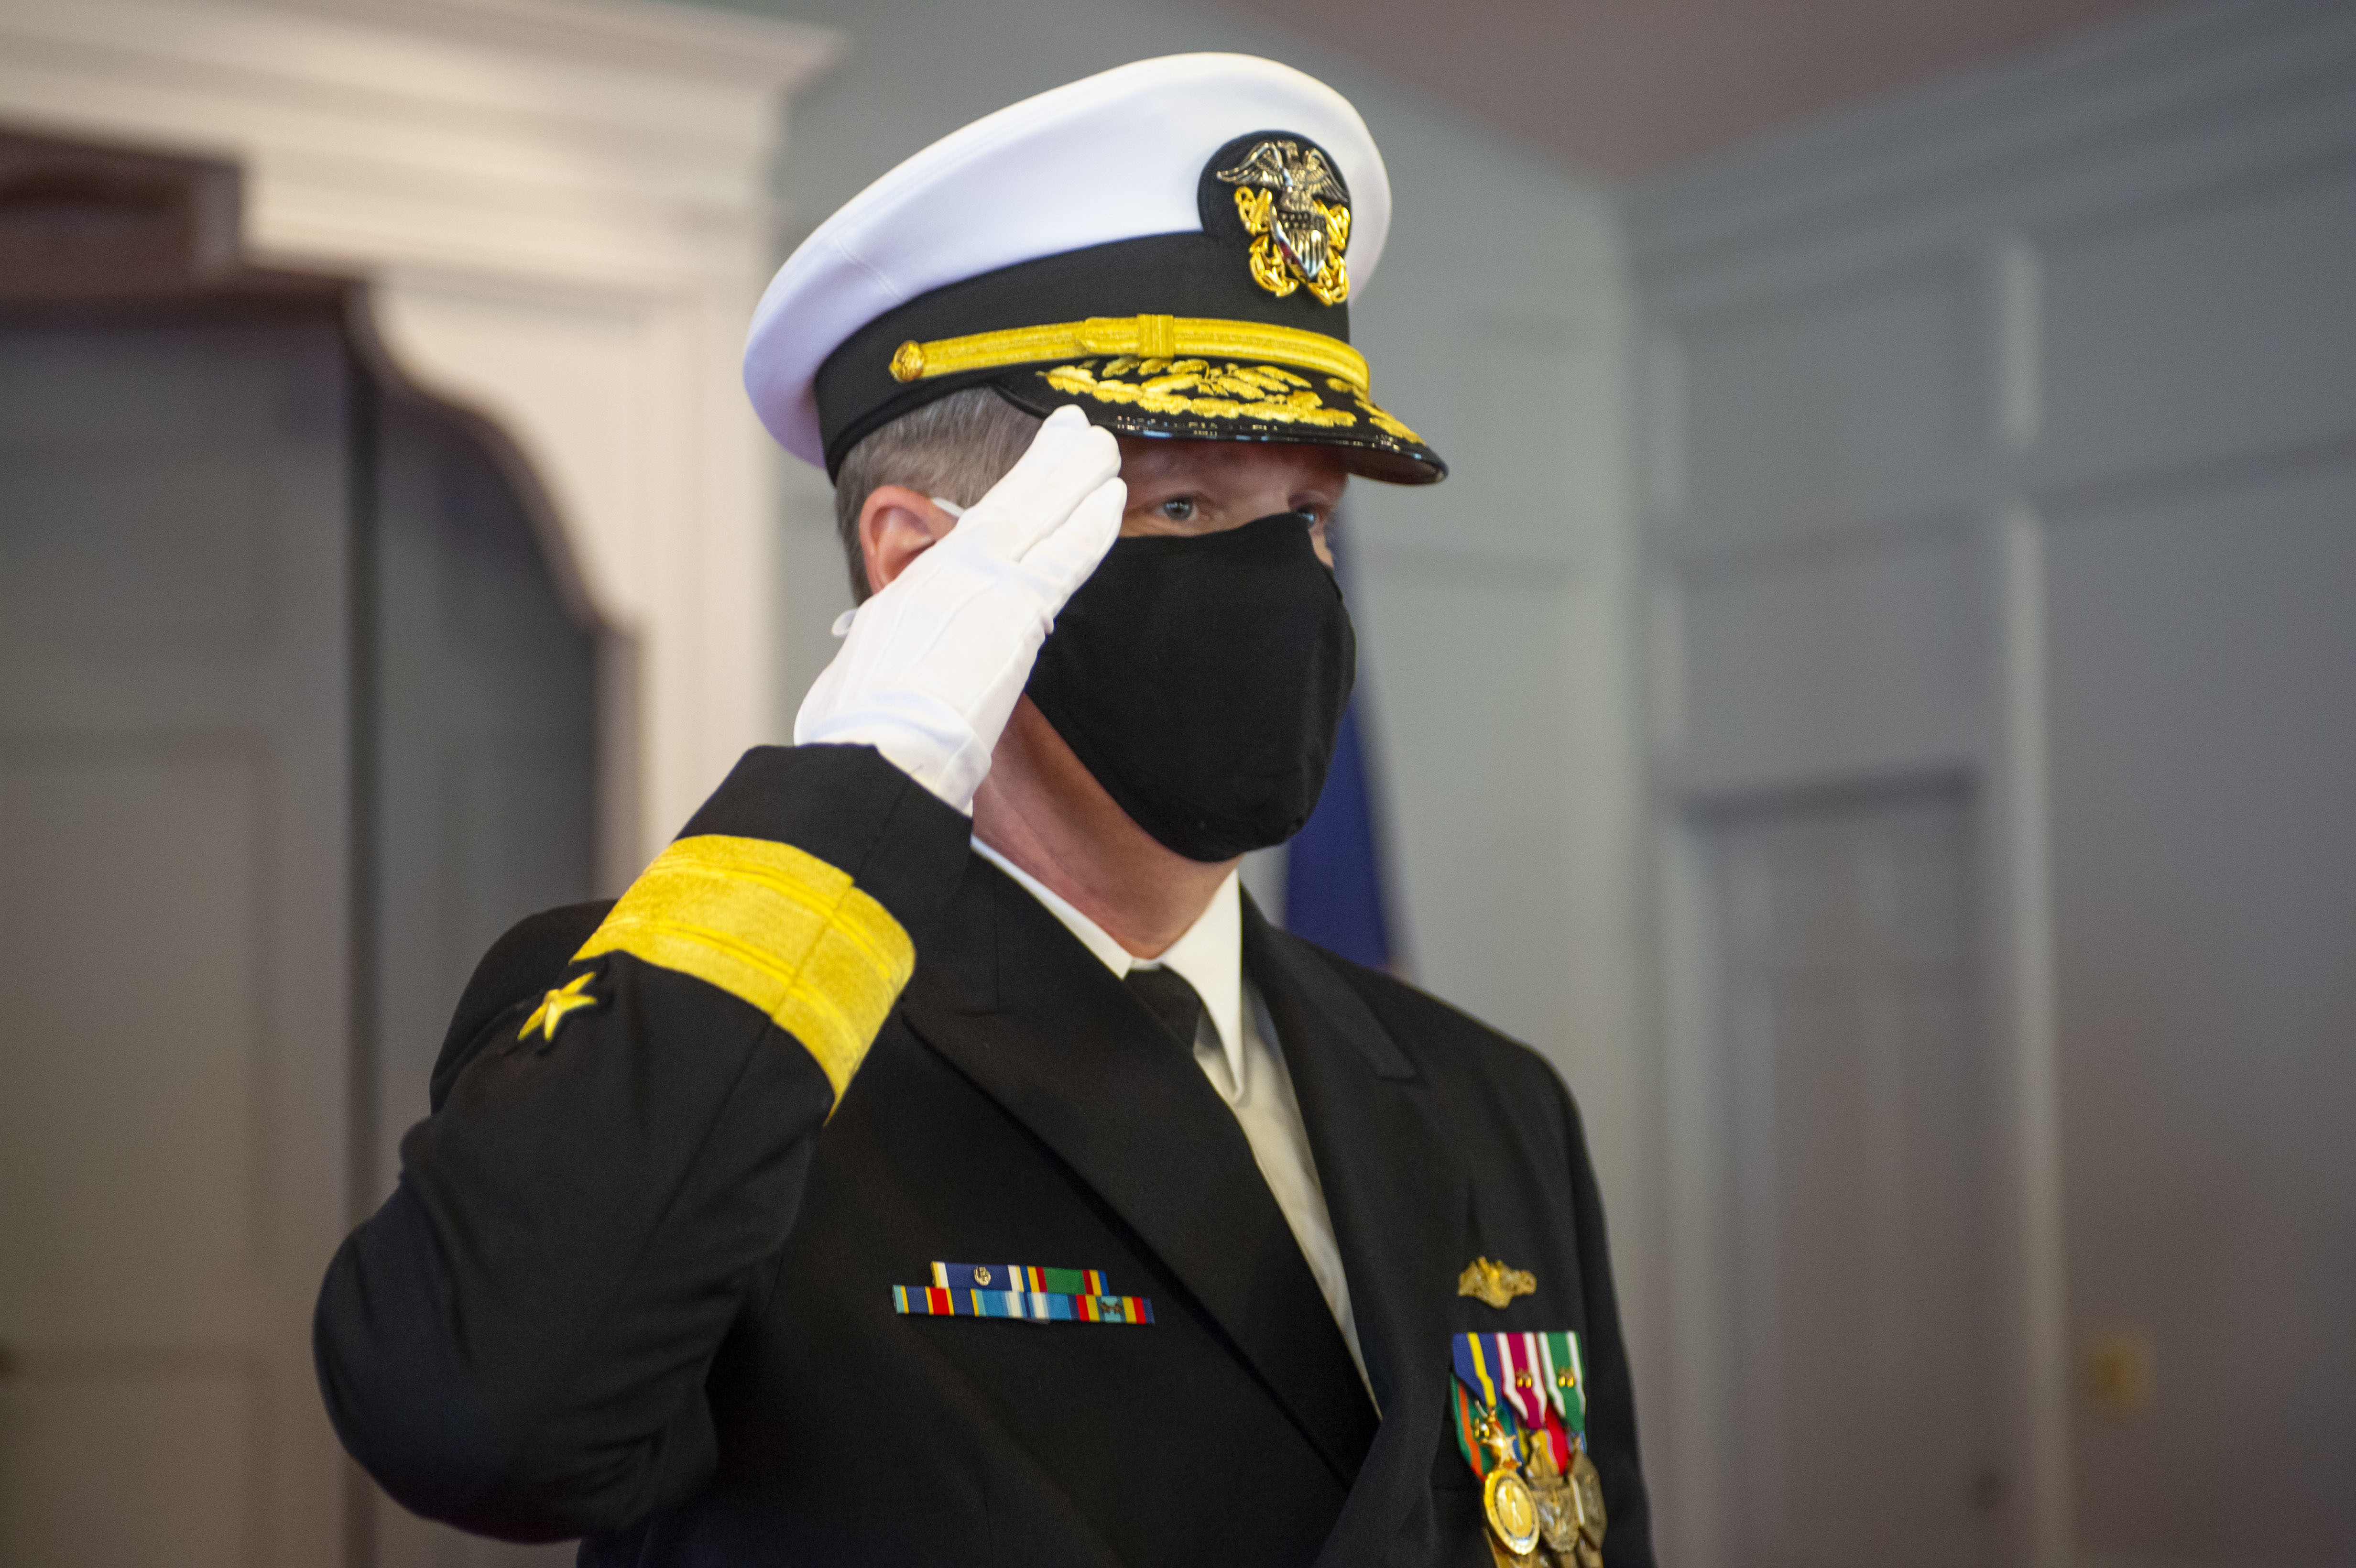 Change of command ceremony for Commander, Submarine Group Two (SUBGRU2) at Naval Support Activity Hampton Roads in Norfolk, Va., March 26, 2021.